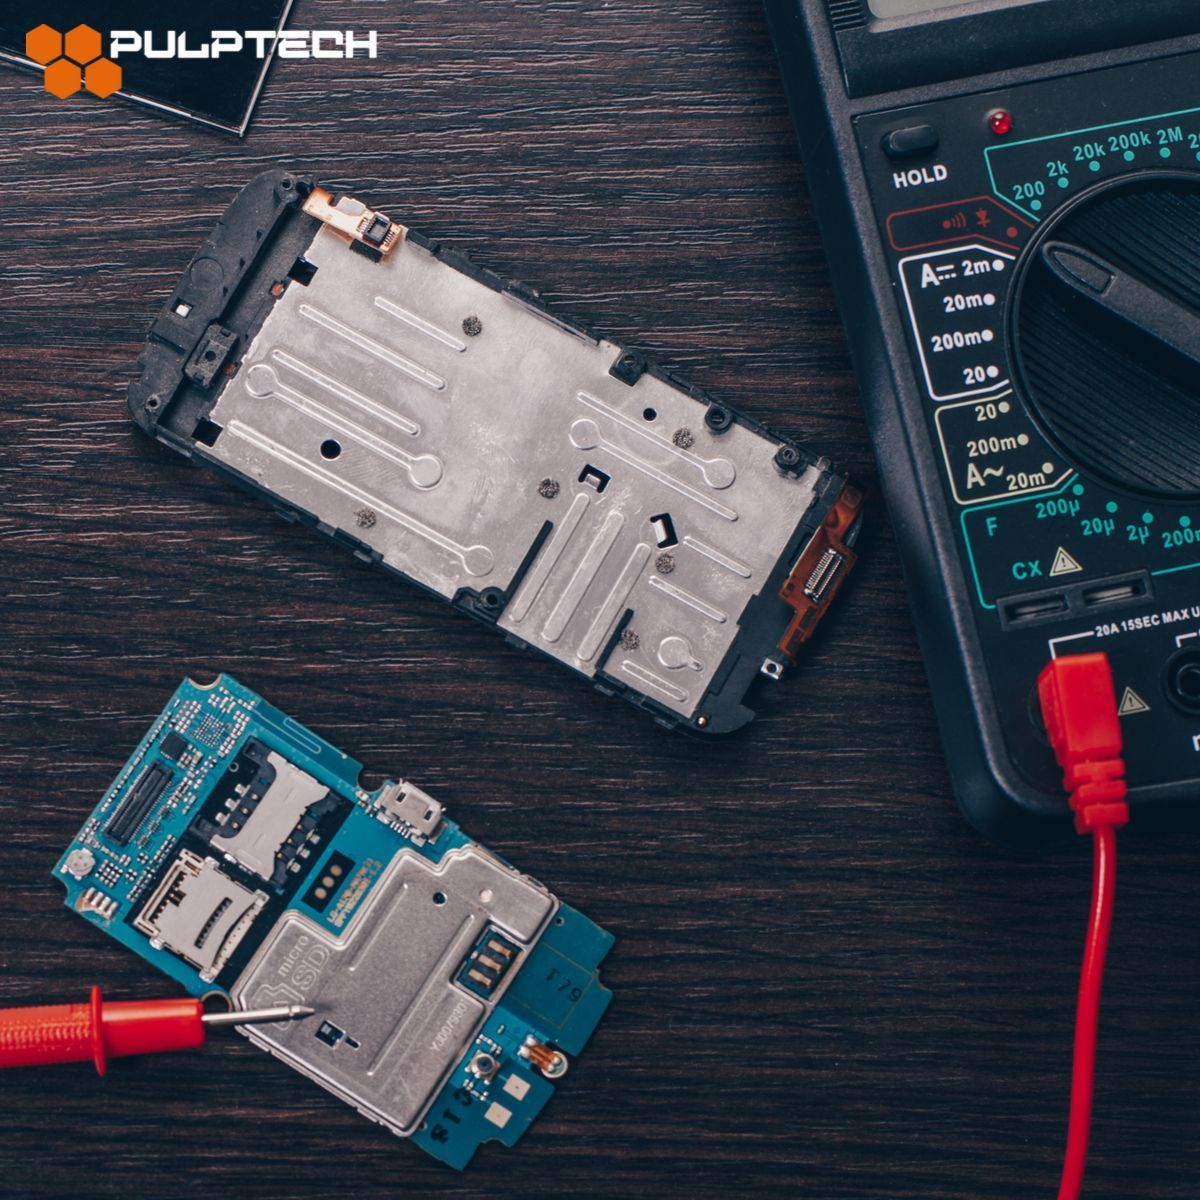 We Have All The Tools And Expertise Required To Fix Your Phone Pulptech Www Pulptechmalta Com Phone Tablet Laptop Console An Laptop Repair Repair